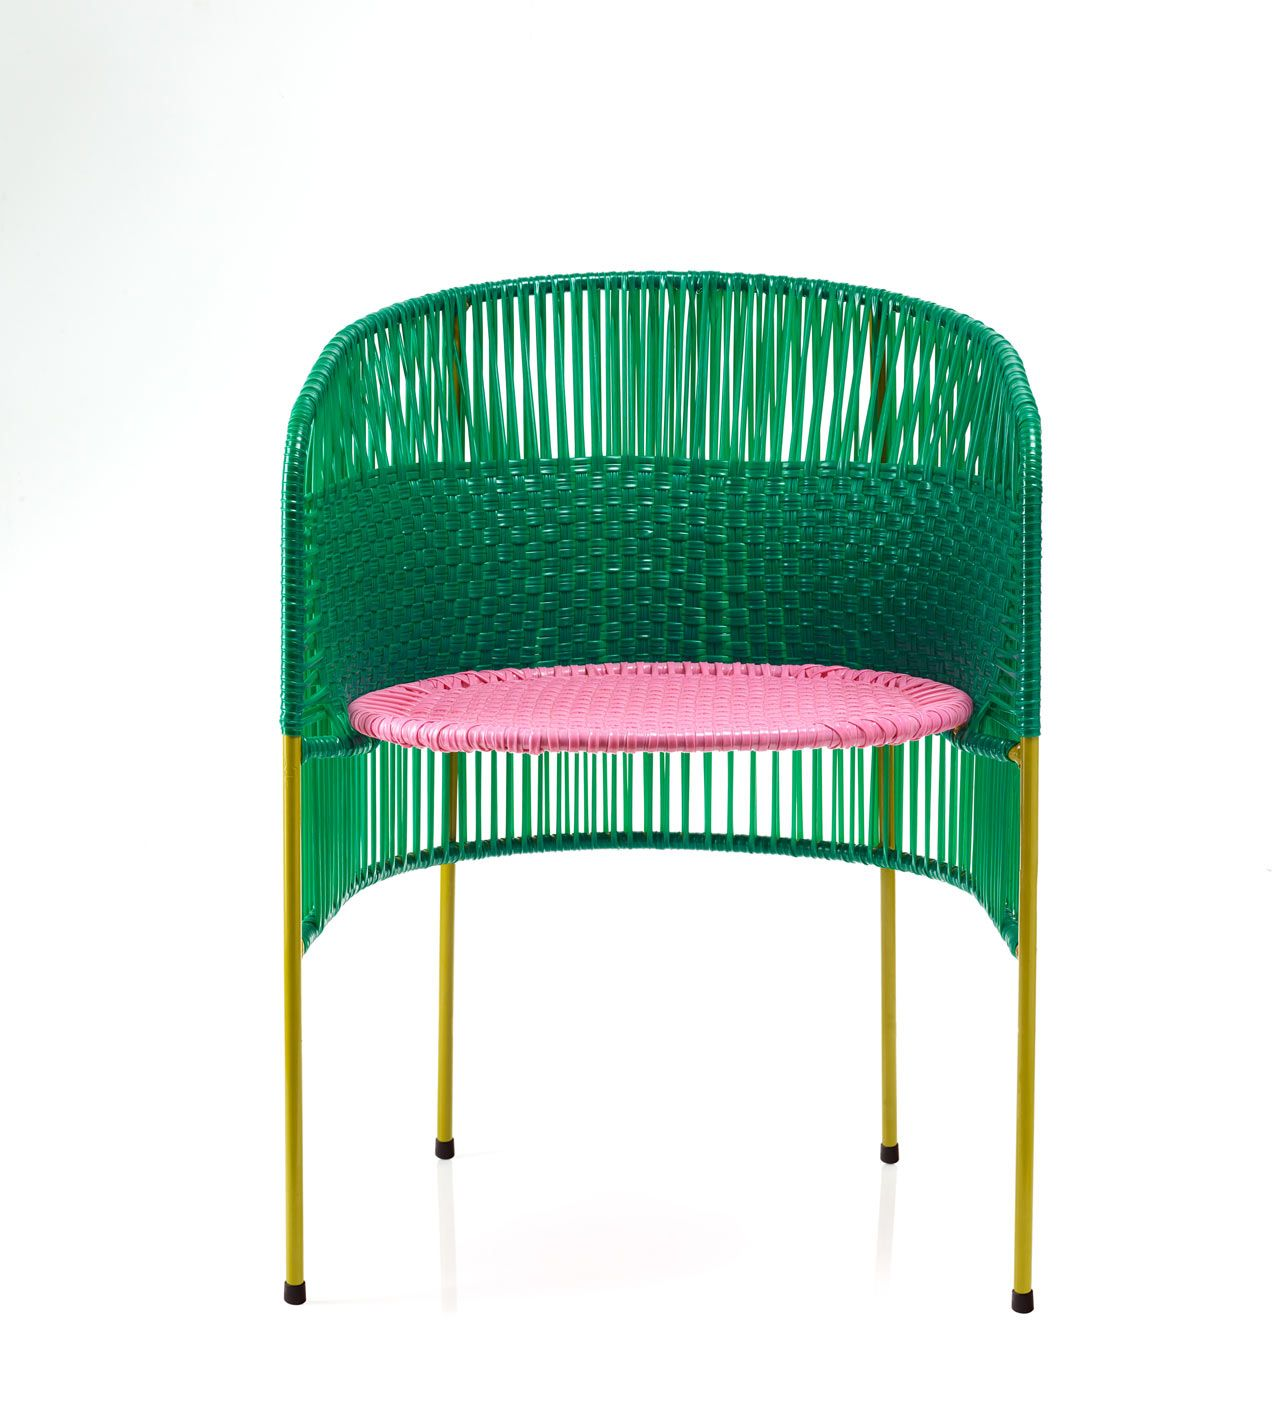 ames Launches CARIBE, a Colorful Outdoor Collection Made of Recycled ...